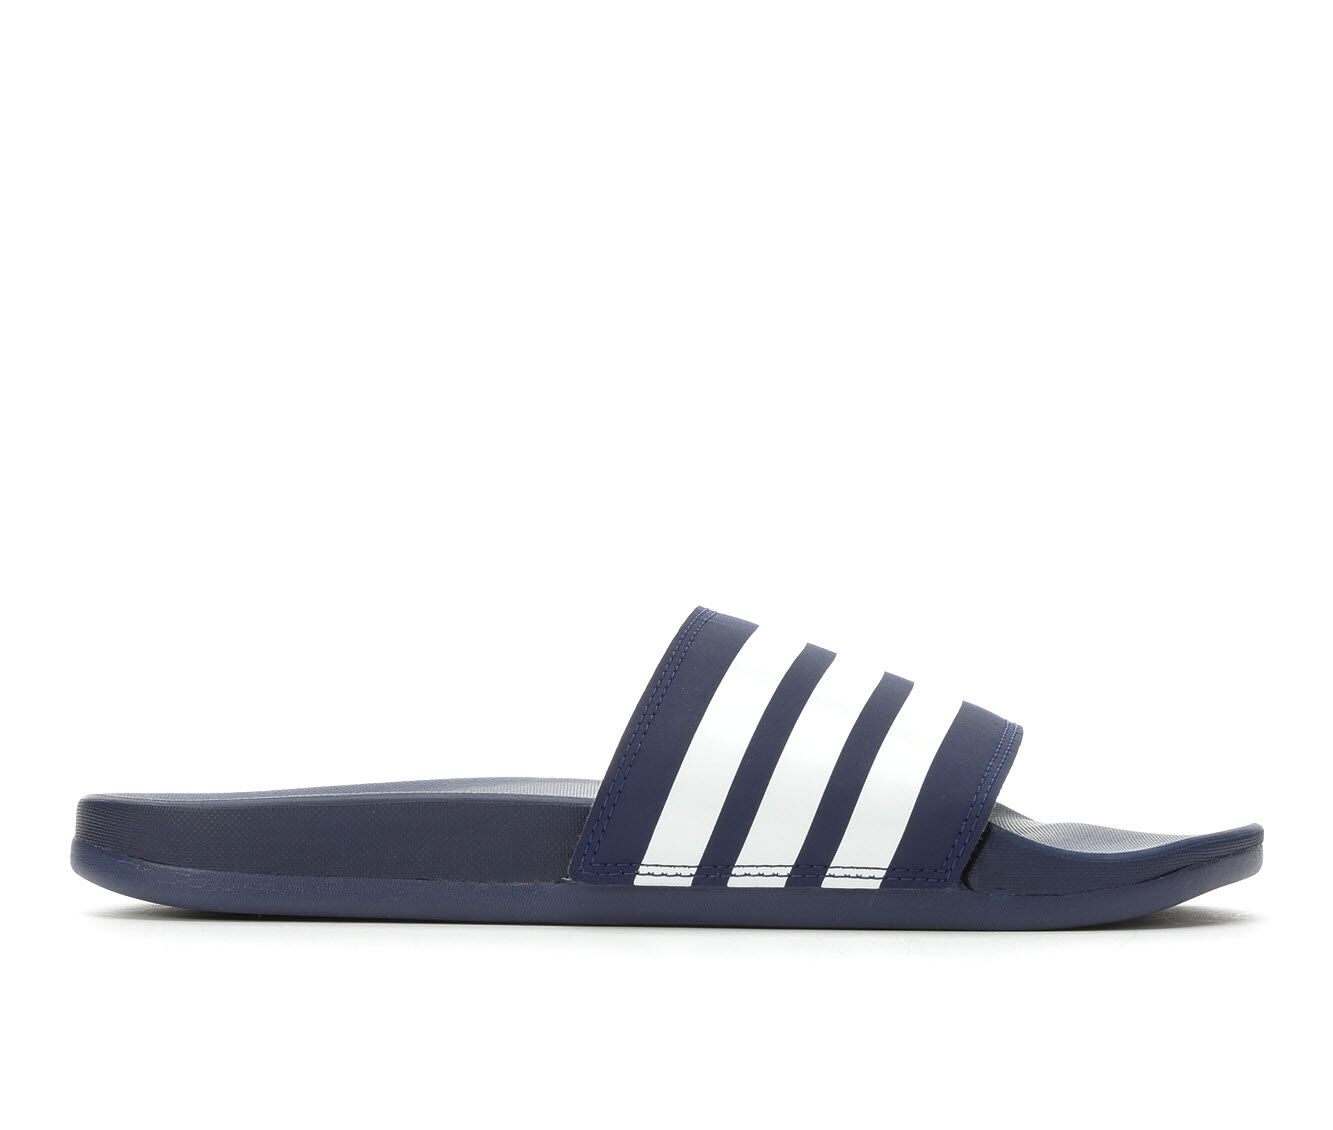 Men's Adidas Adilette Cloudfoam Plus Sport Slides DkBlue/White